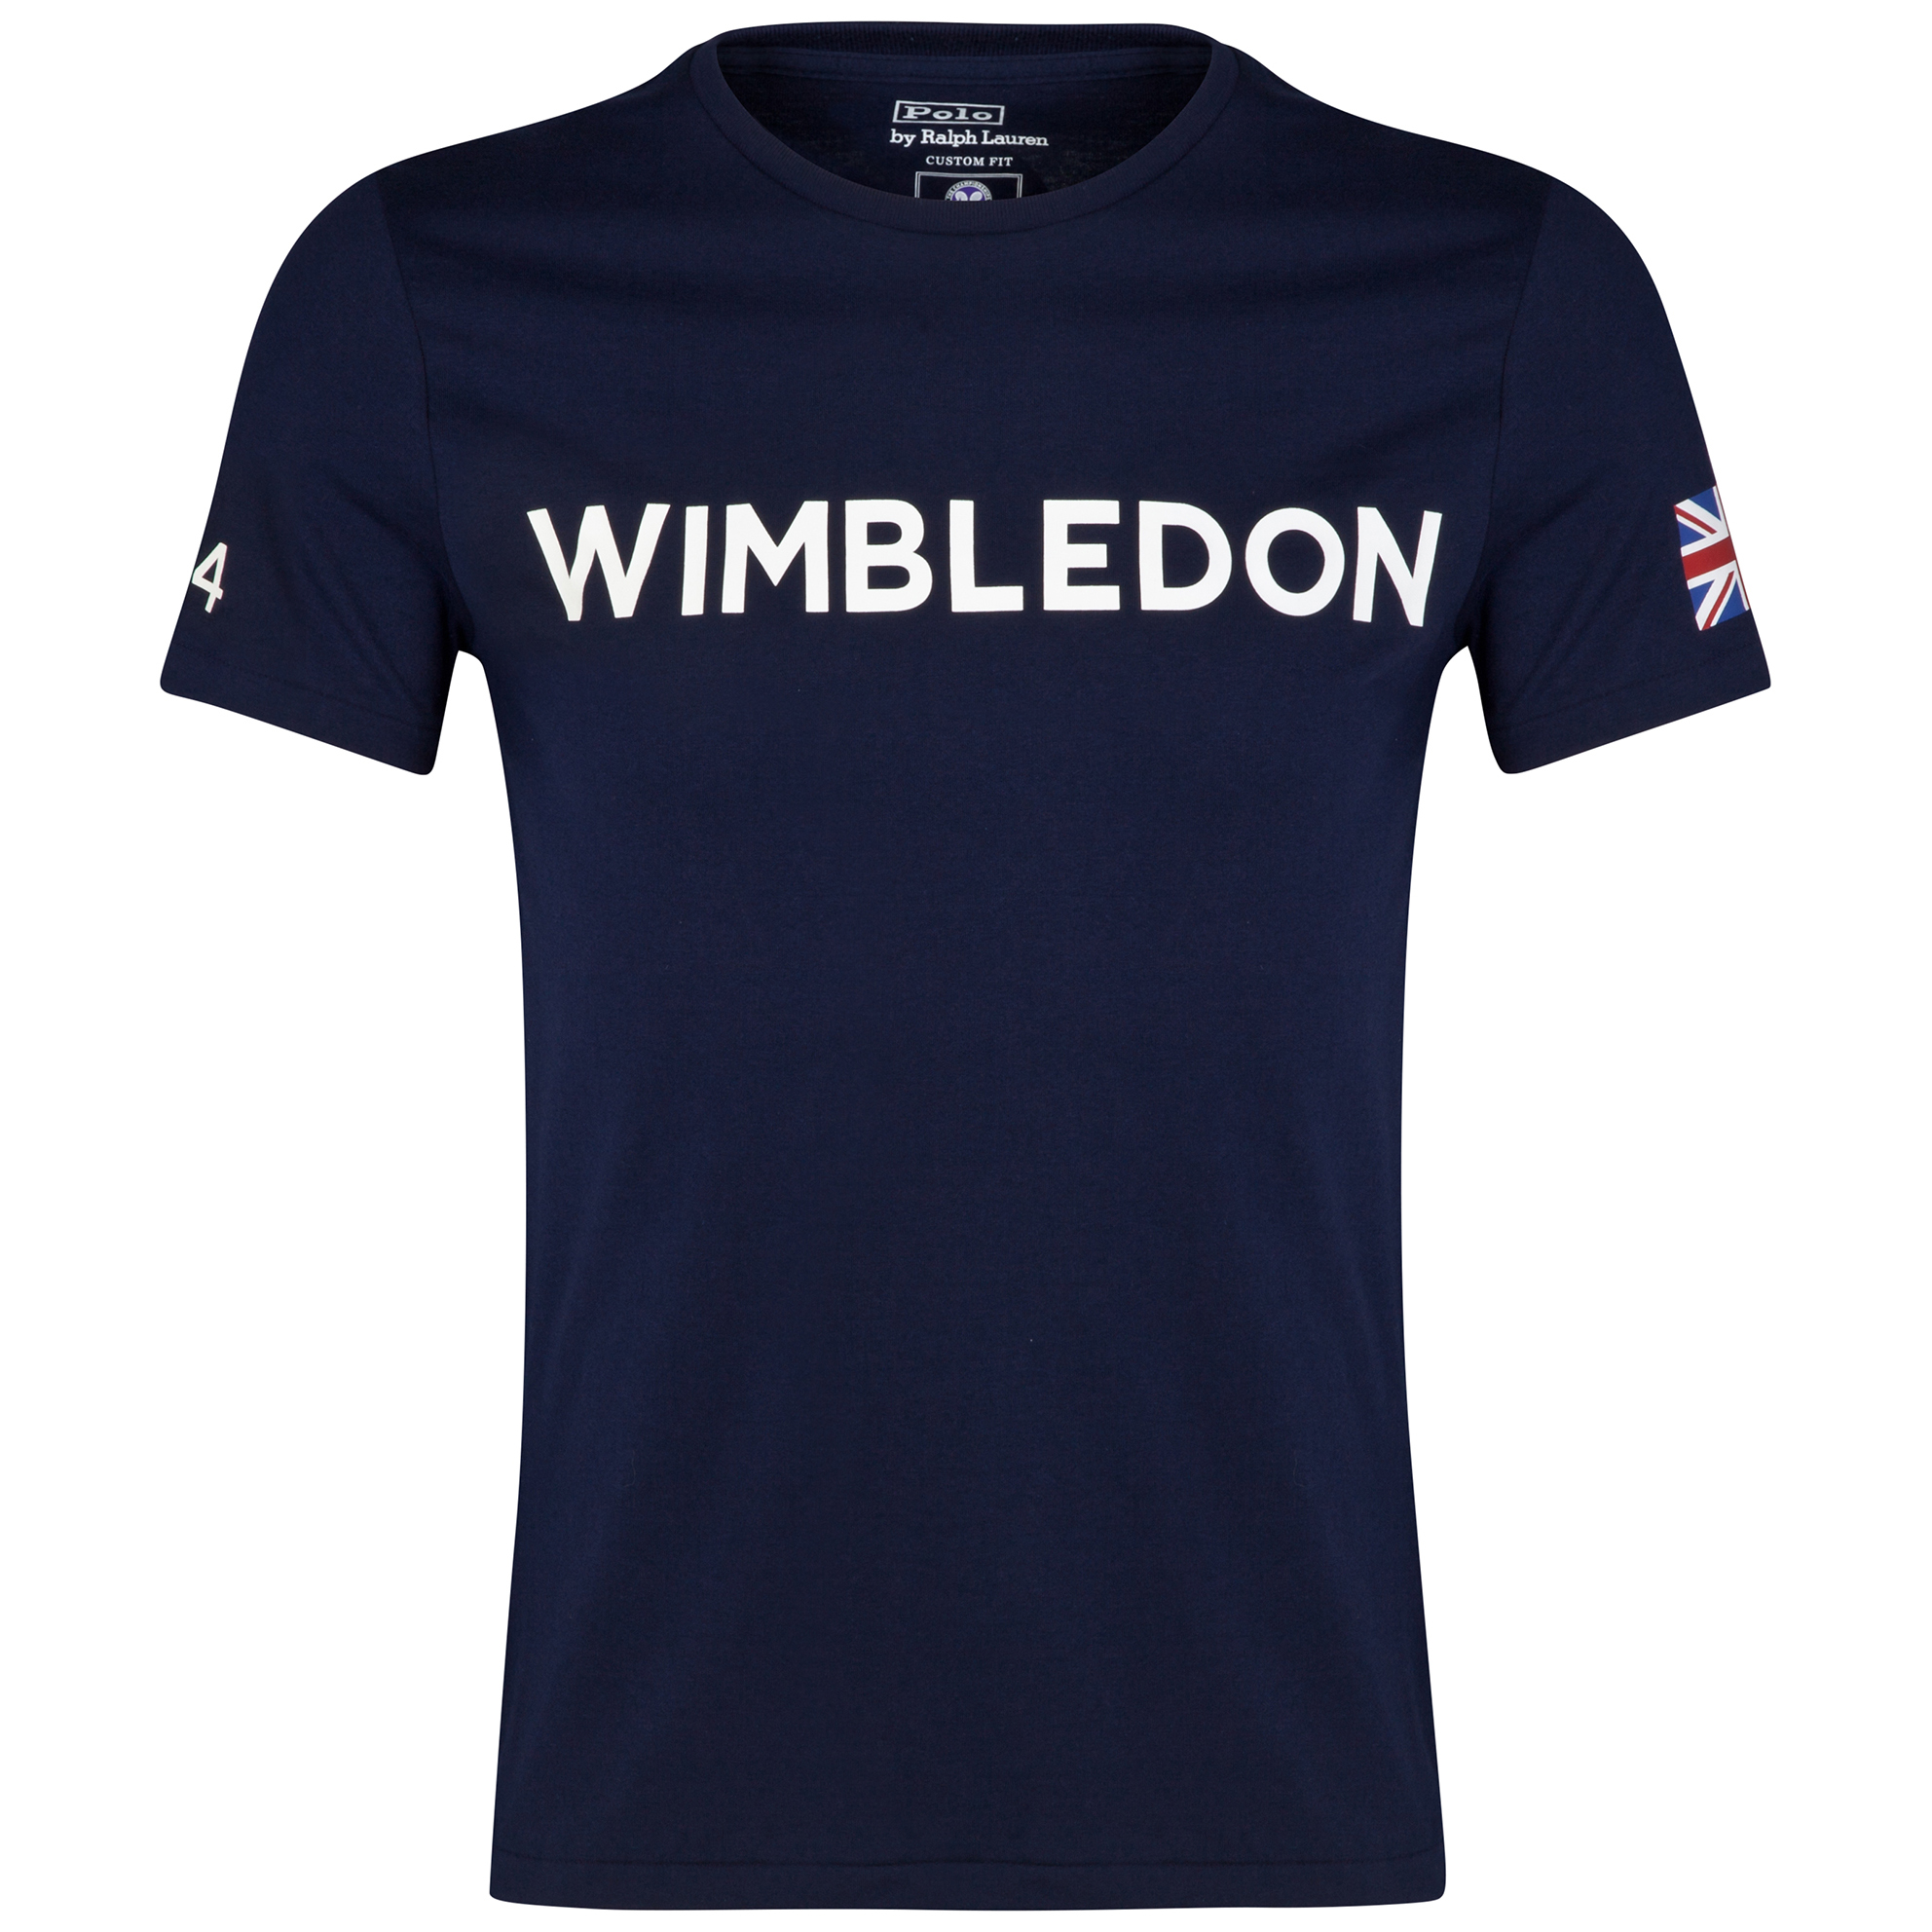 Wimbledon Polo Ralph Lauren Print T-Shirt - French Navy